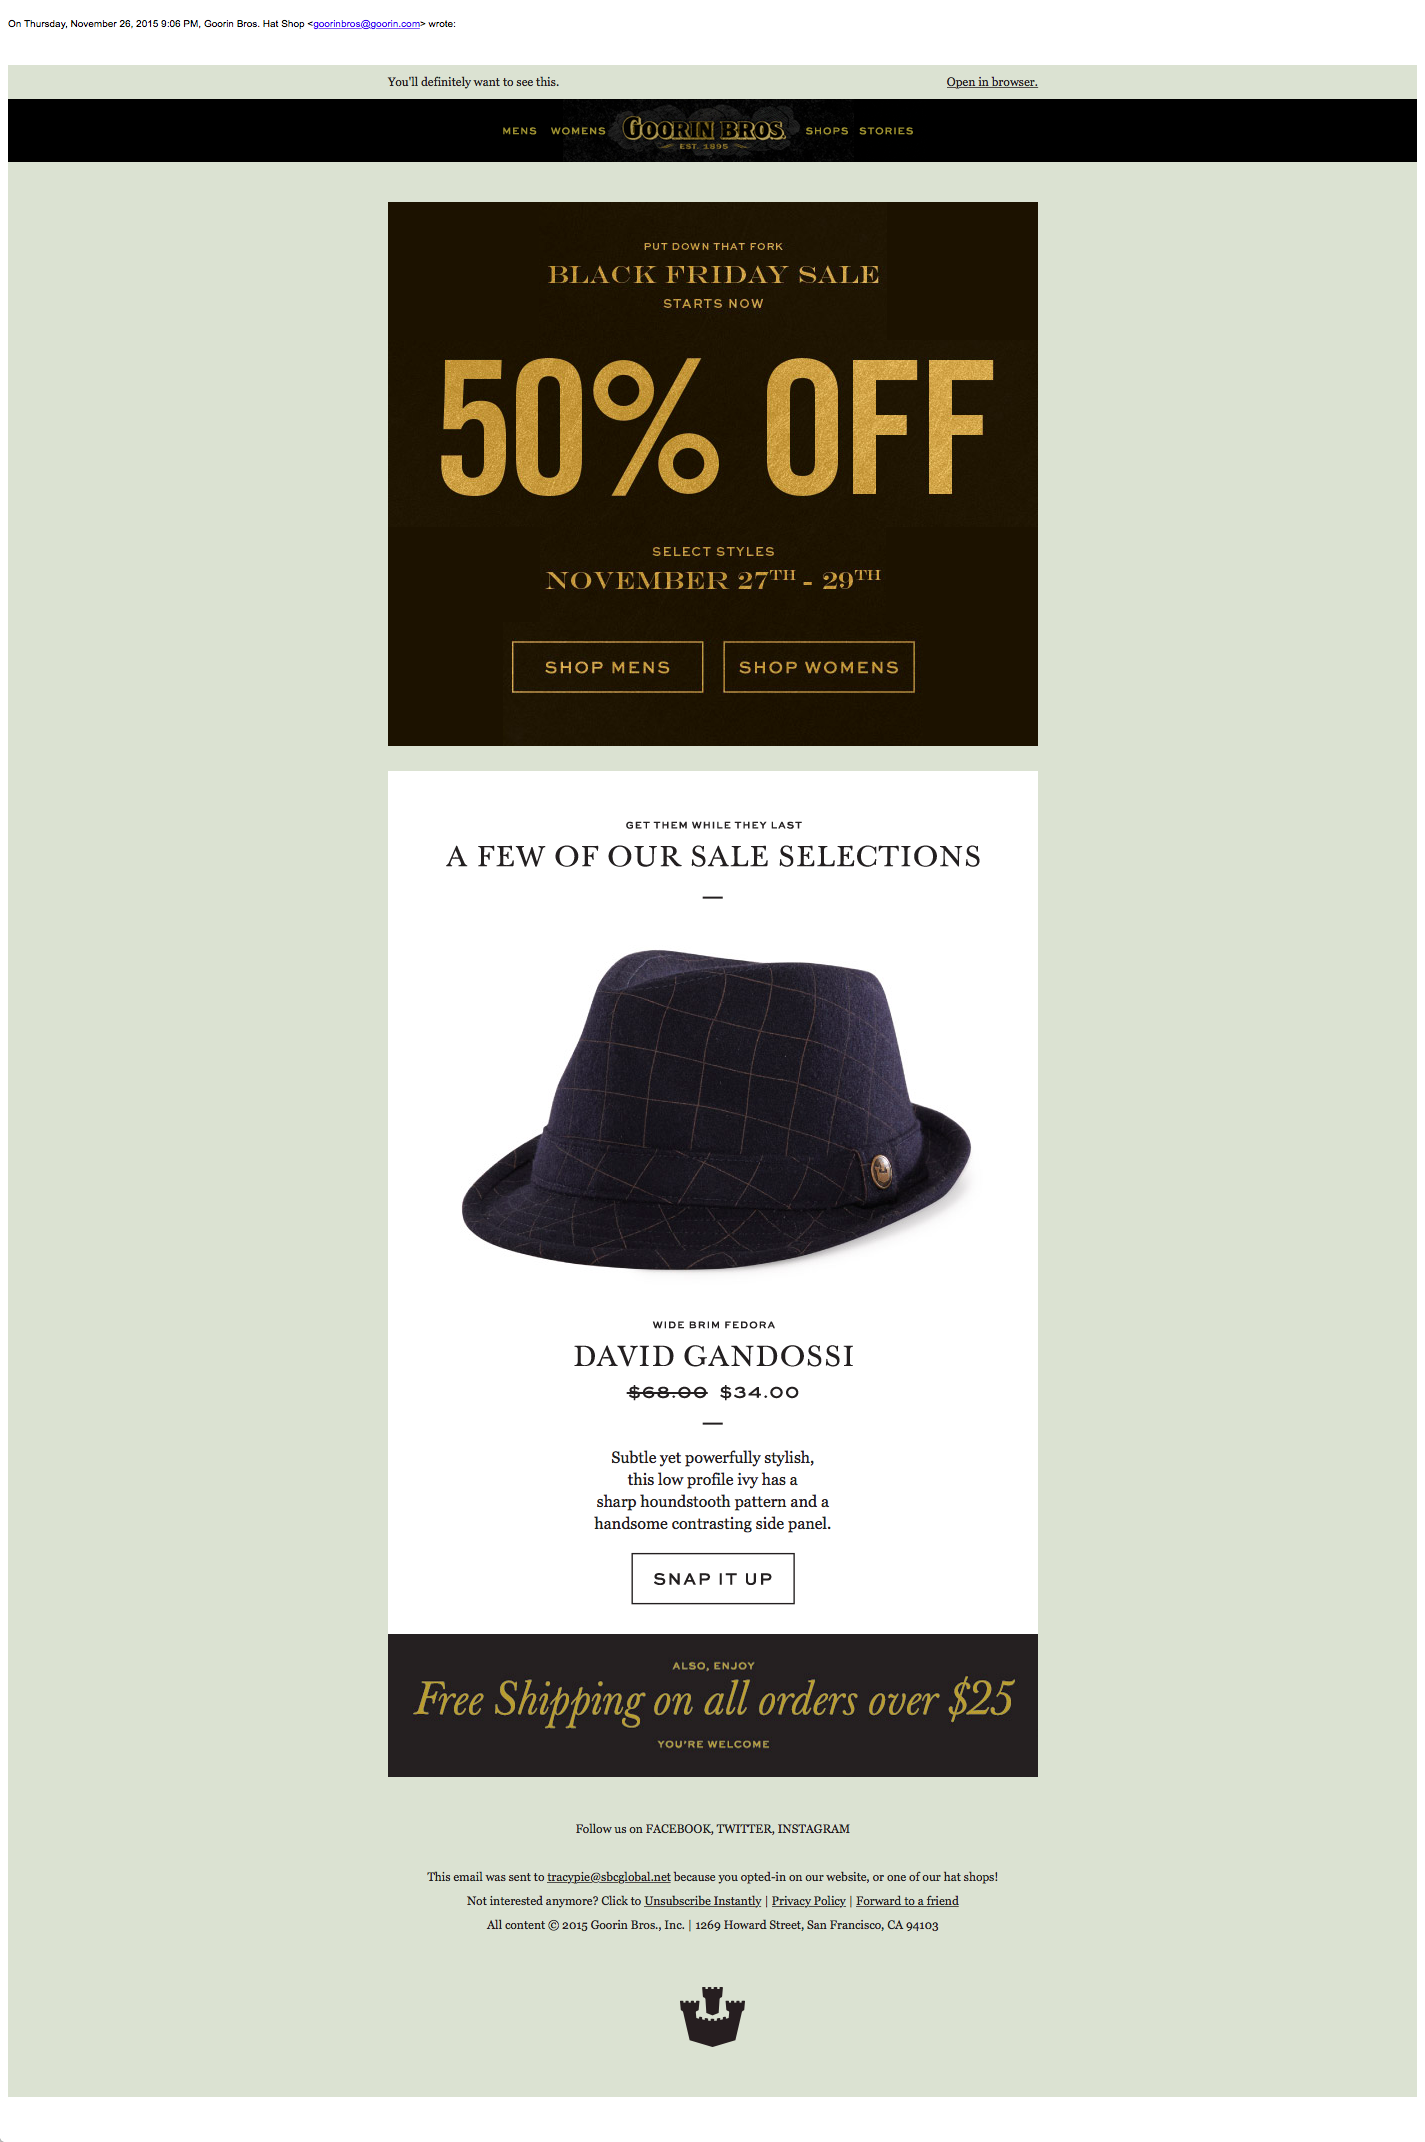 Goorin Bros Black Friday Email Campaign 2015